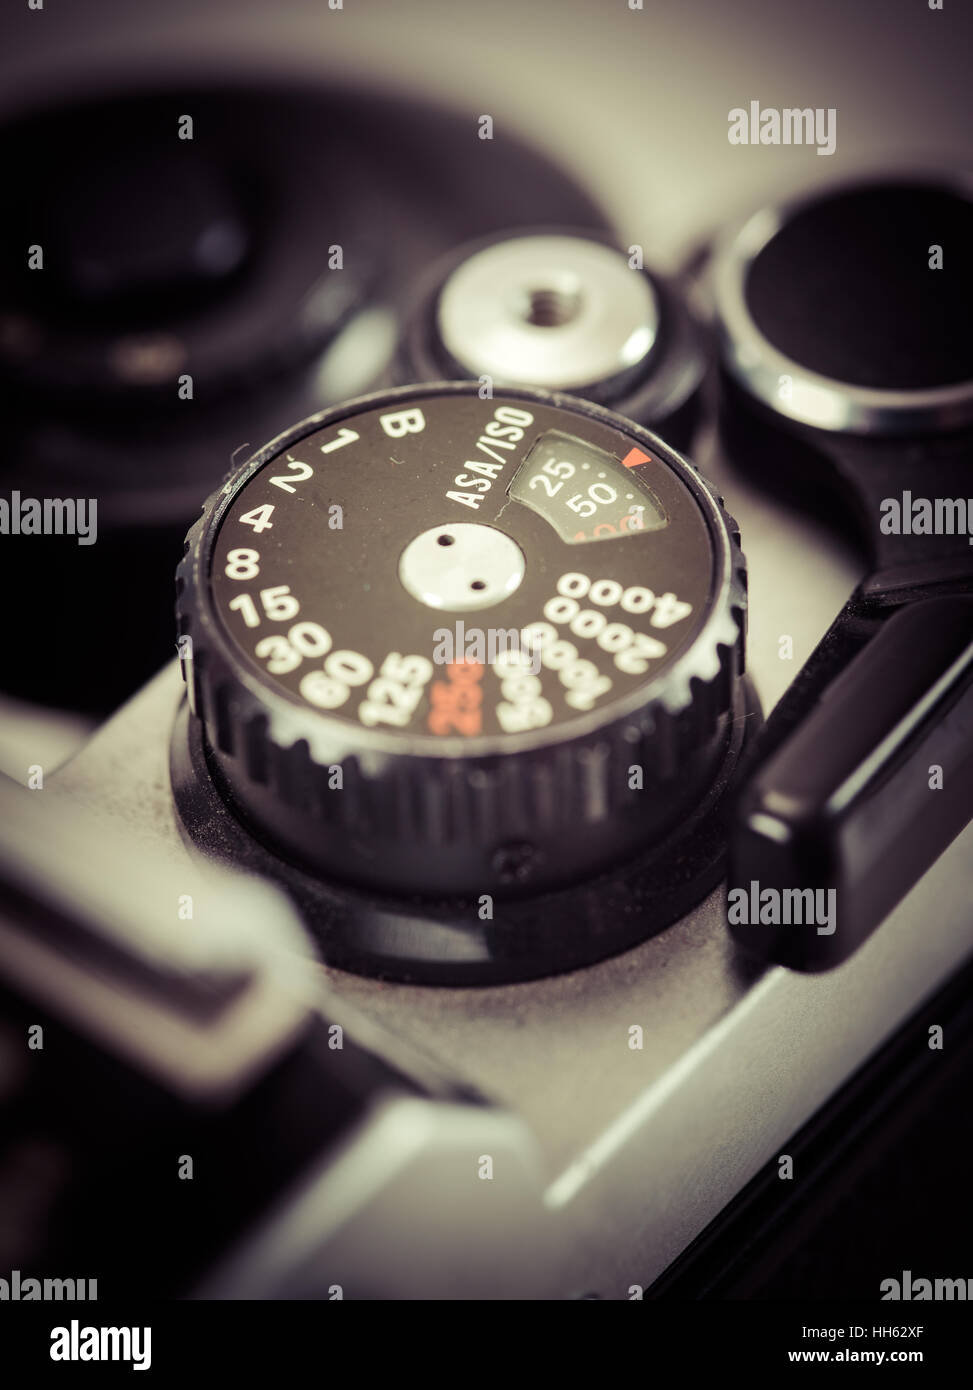 Macro photo of the shutter knob of an old 35mm film camera. Filtered to look vintage. - Stock Image